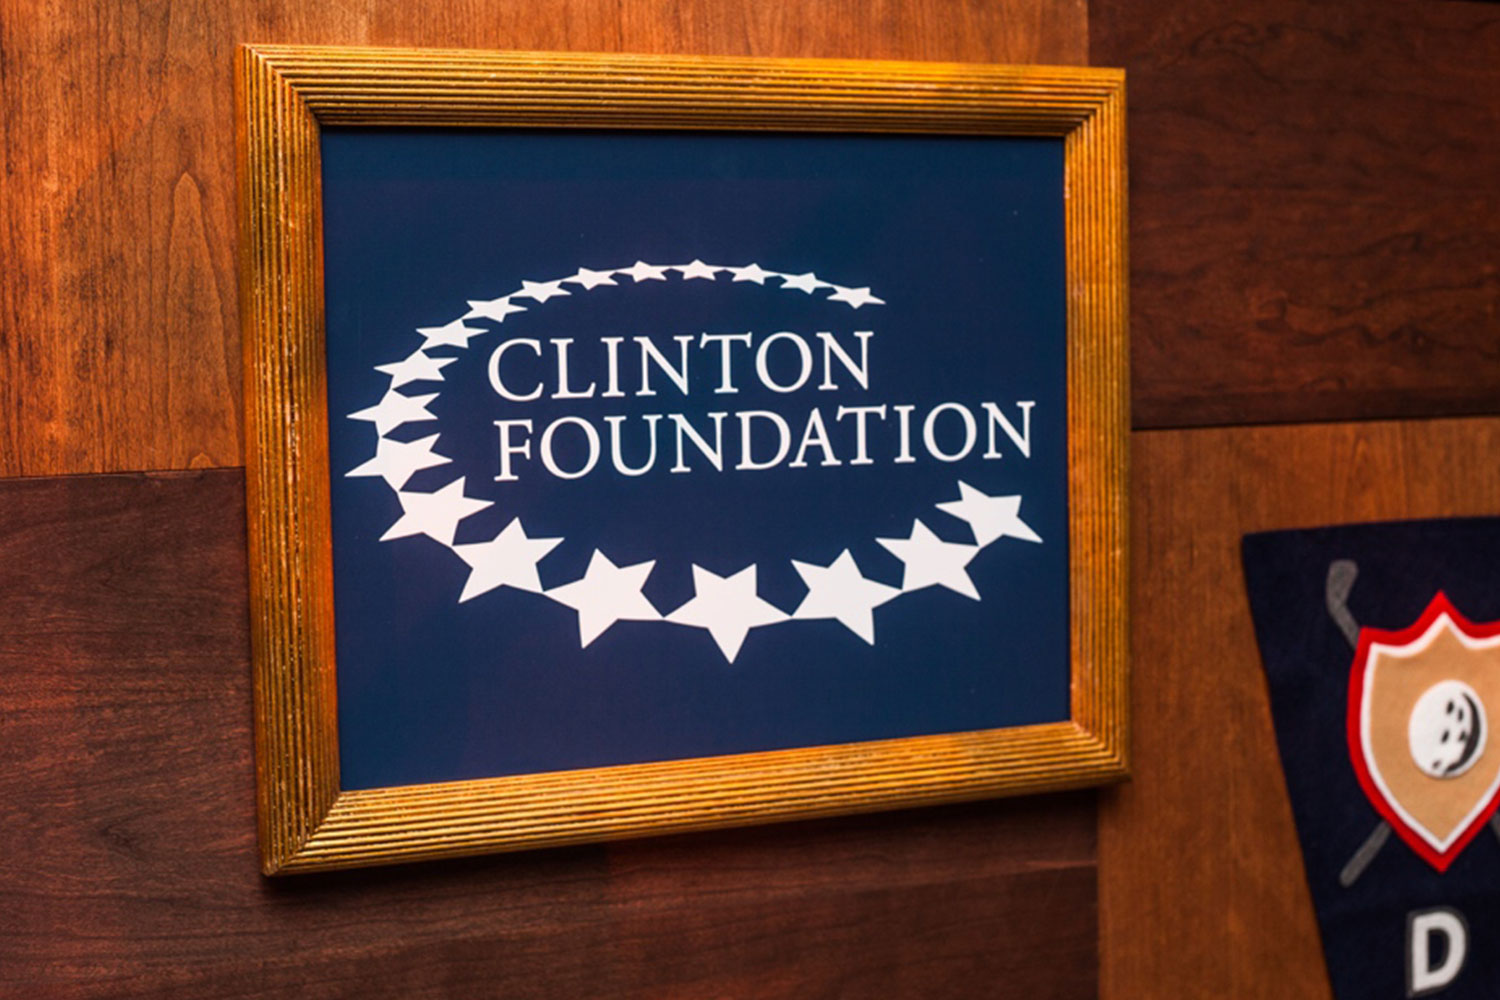 toast-clinton-foundation-graphic-design-10twelve.jpg